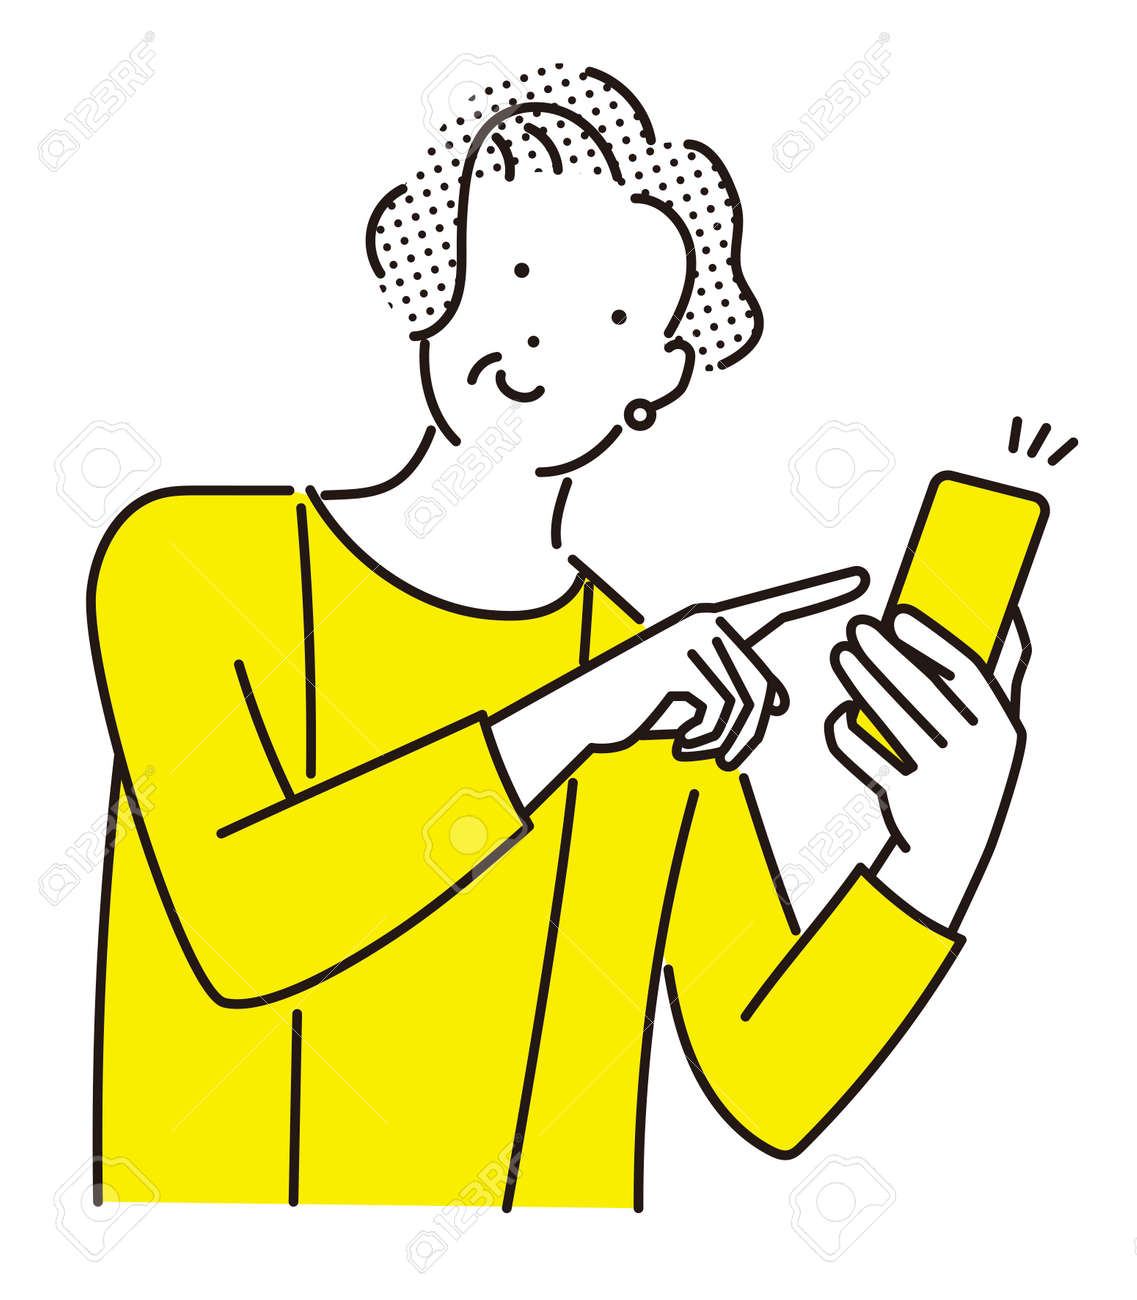 Elderly woman pointing at her smartphone with a smile - 168286849